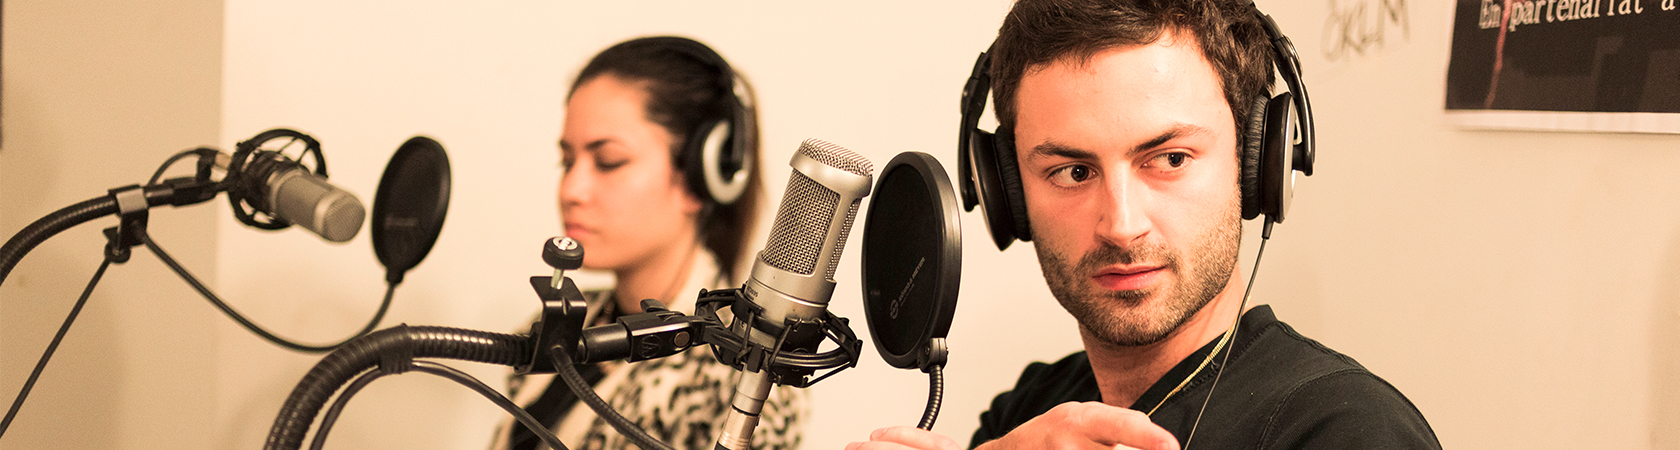 Financement Communication & Production Audiovisuelle - MBA ICART Paris